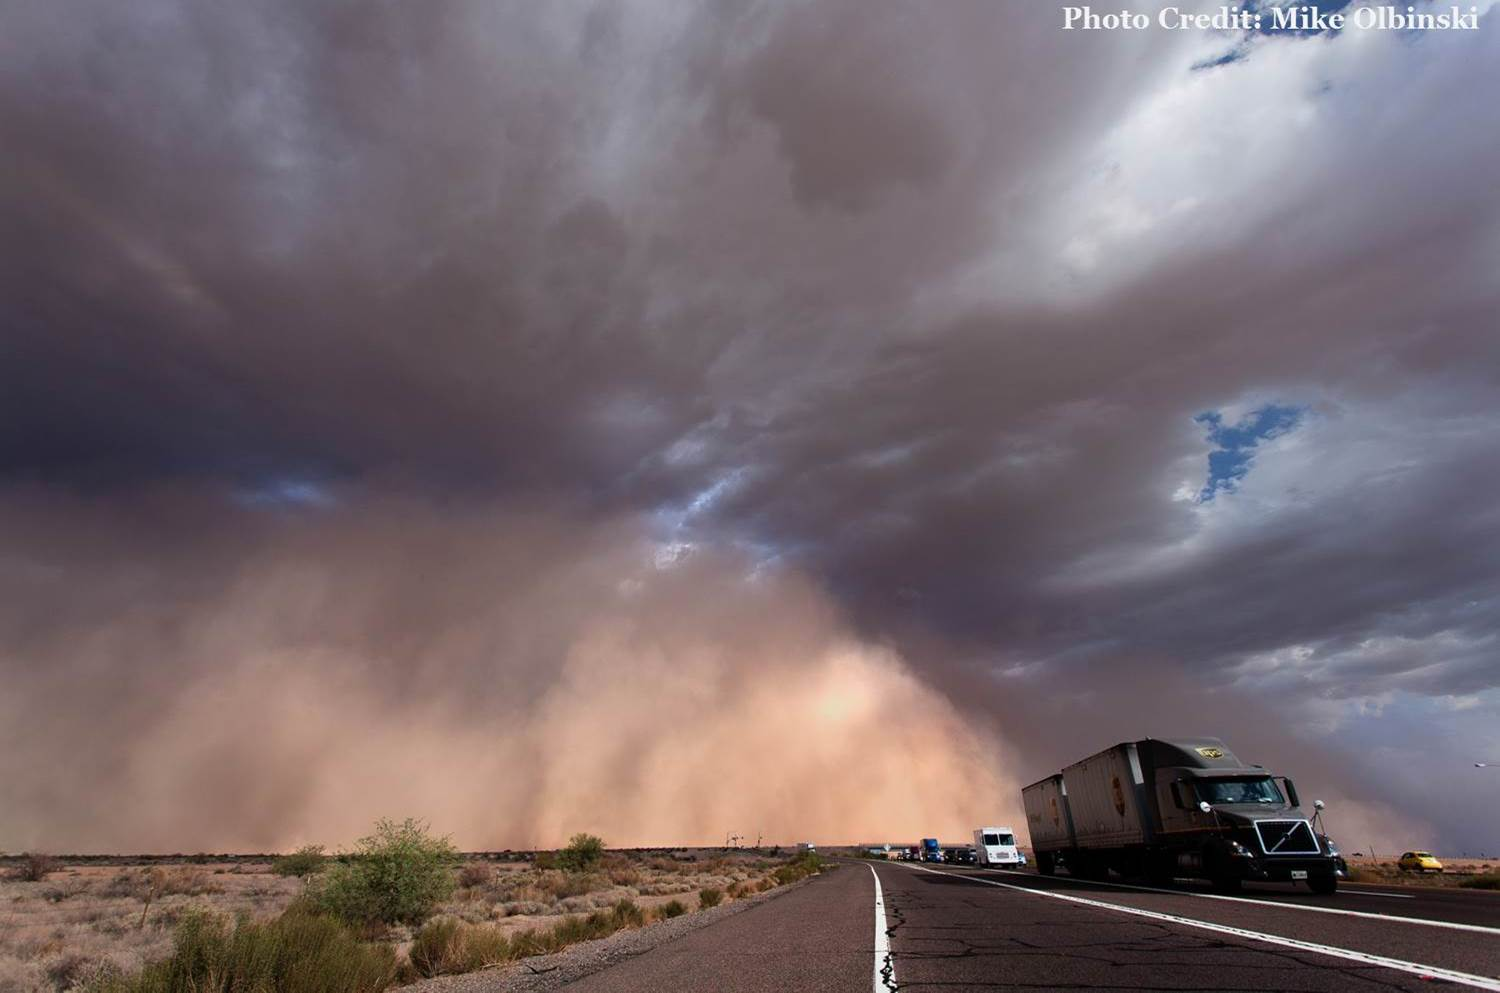 Interstate Dust Storm - Courtesy: Mike Olbinski